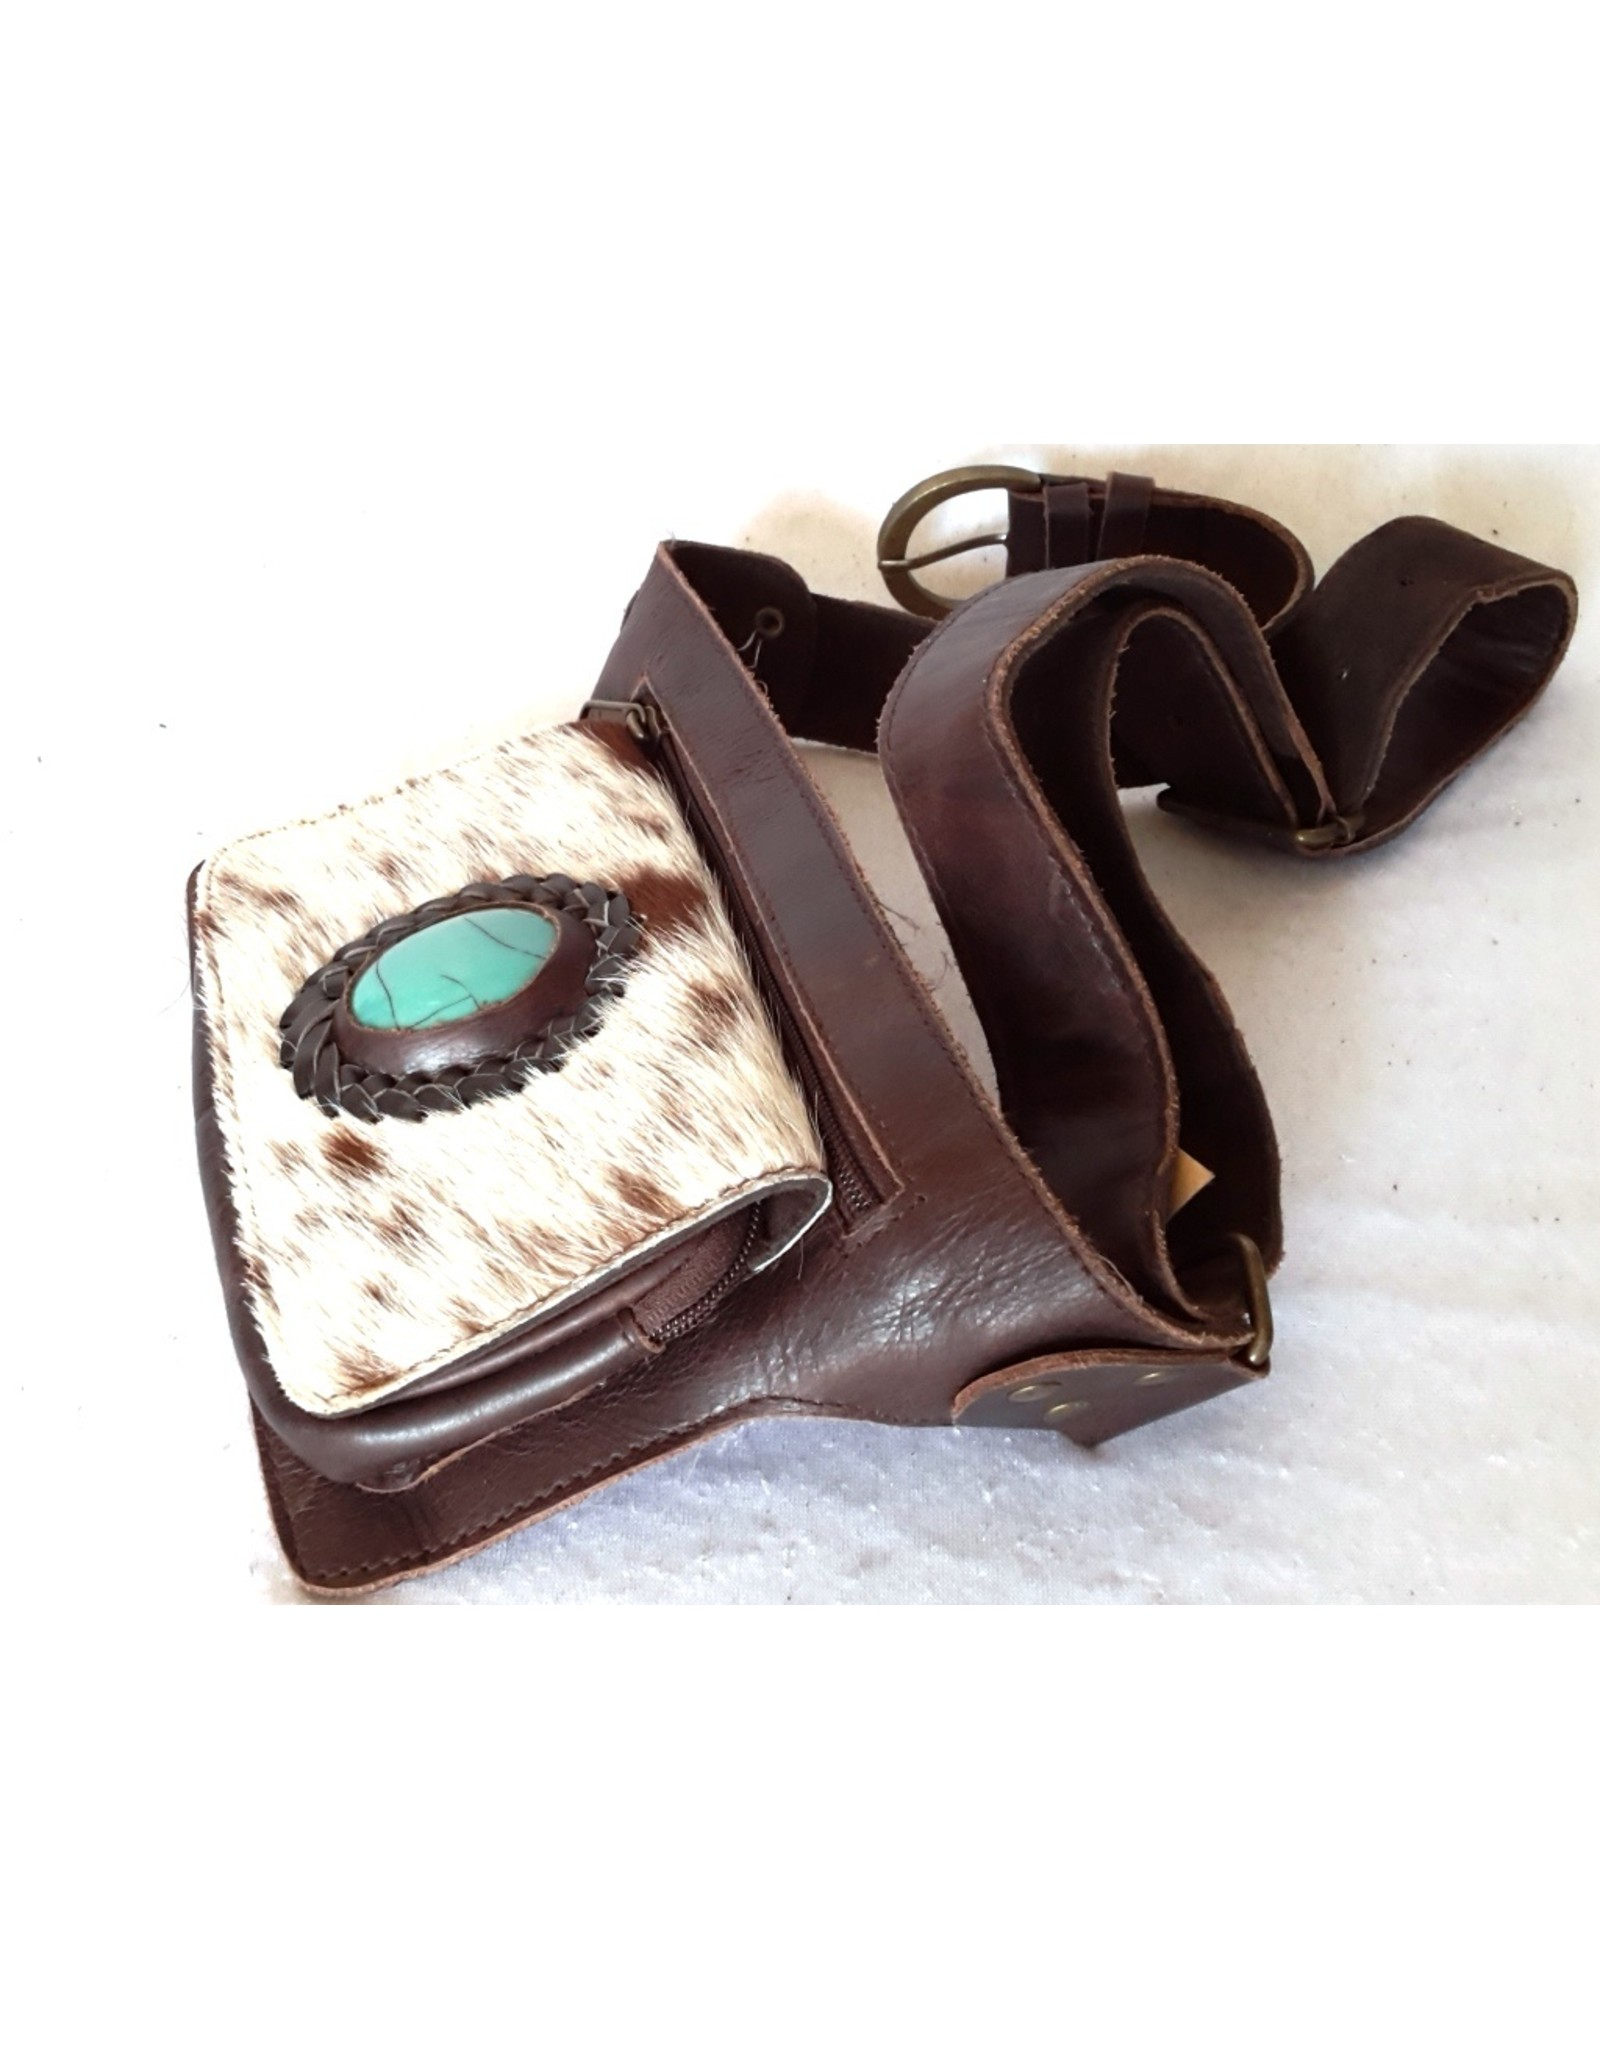 Trukado Small leather bags, cluches and more -   Leather waist bag with fur and large blue stone - Handmade, dark brown